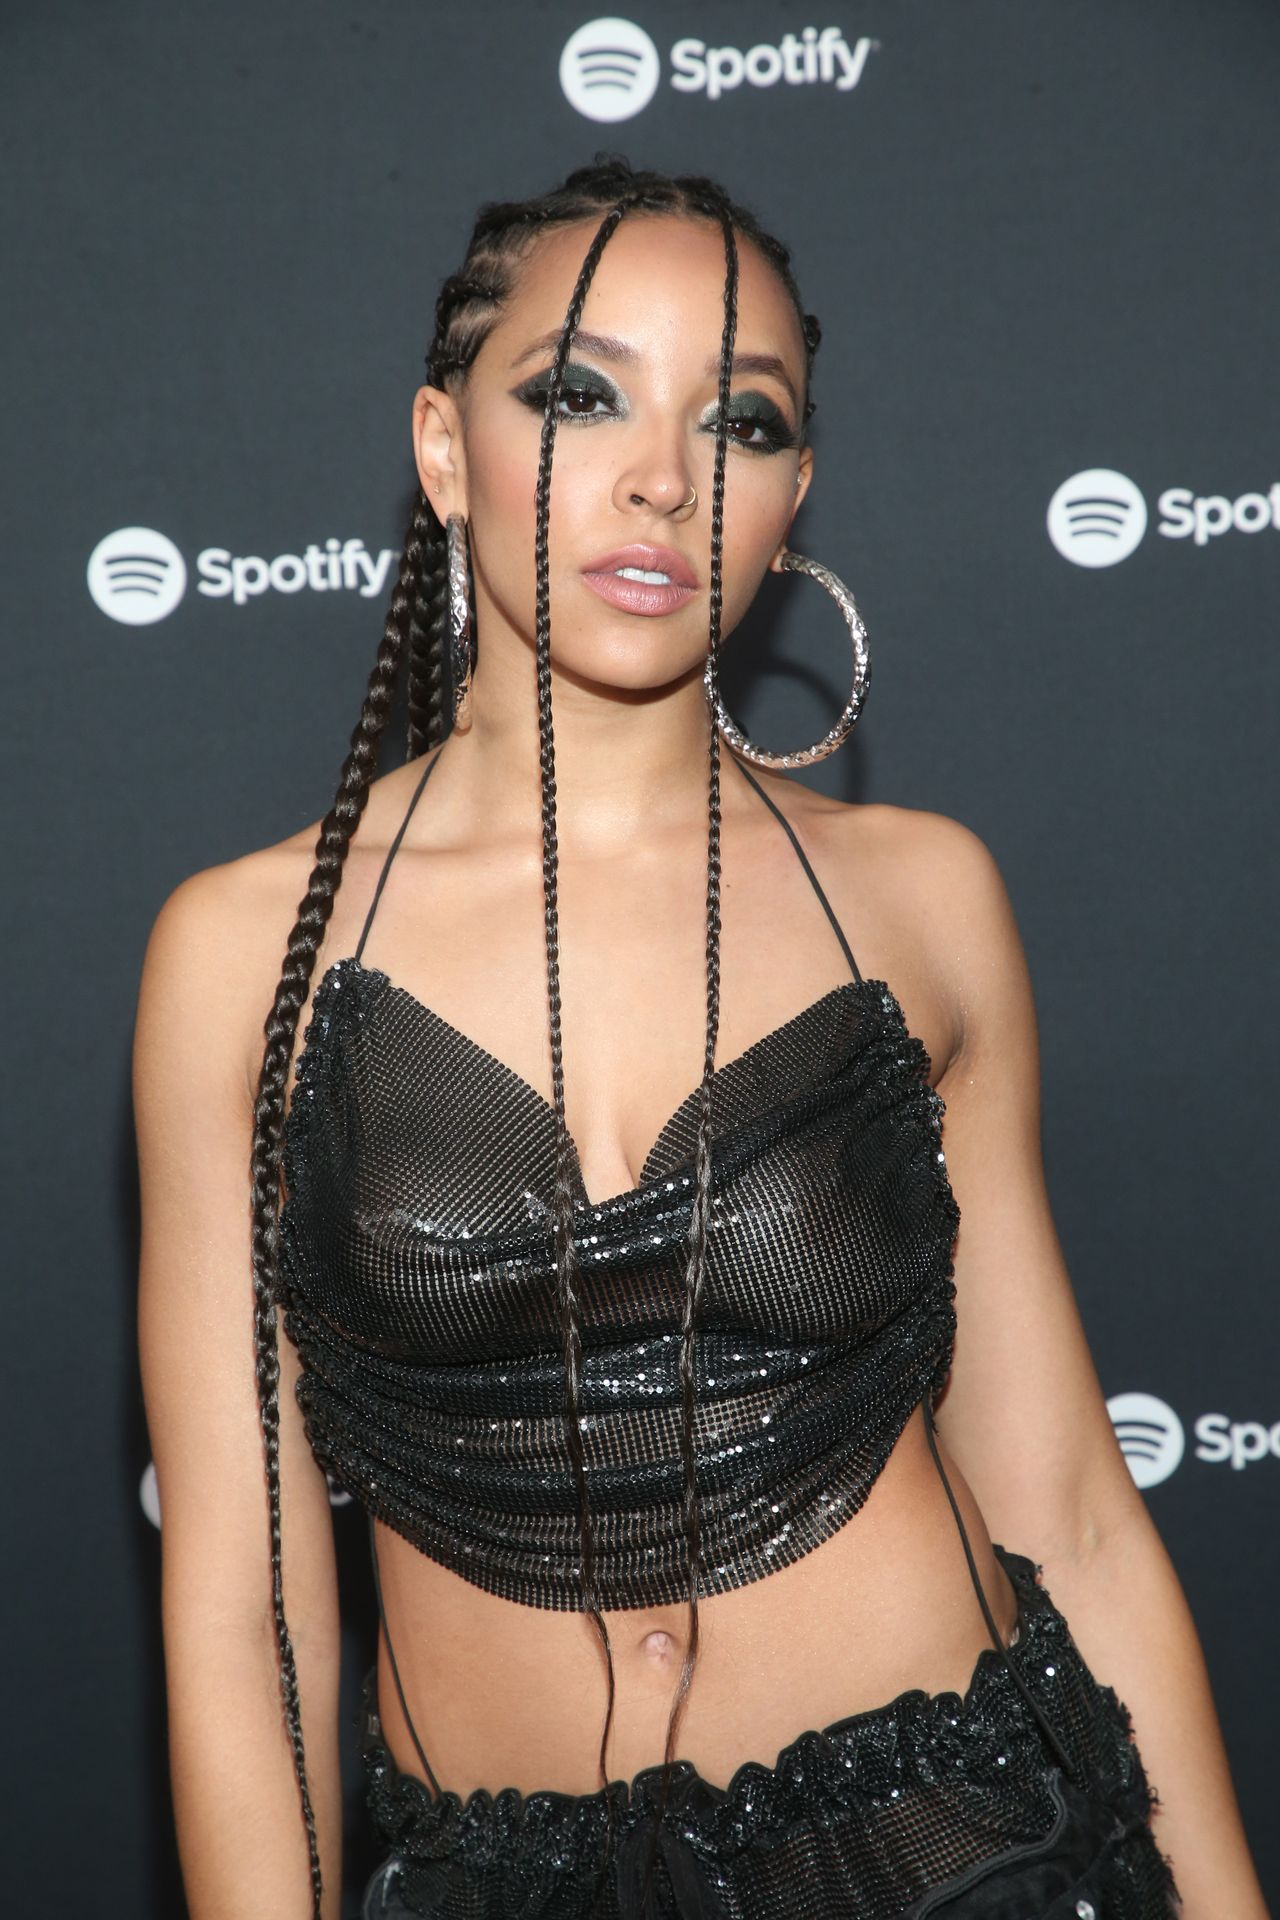 Tinashe Flaunts Her Tits At The Spotify Best New Artist Party 0041